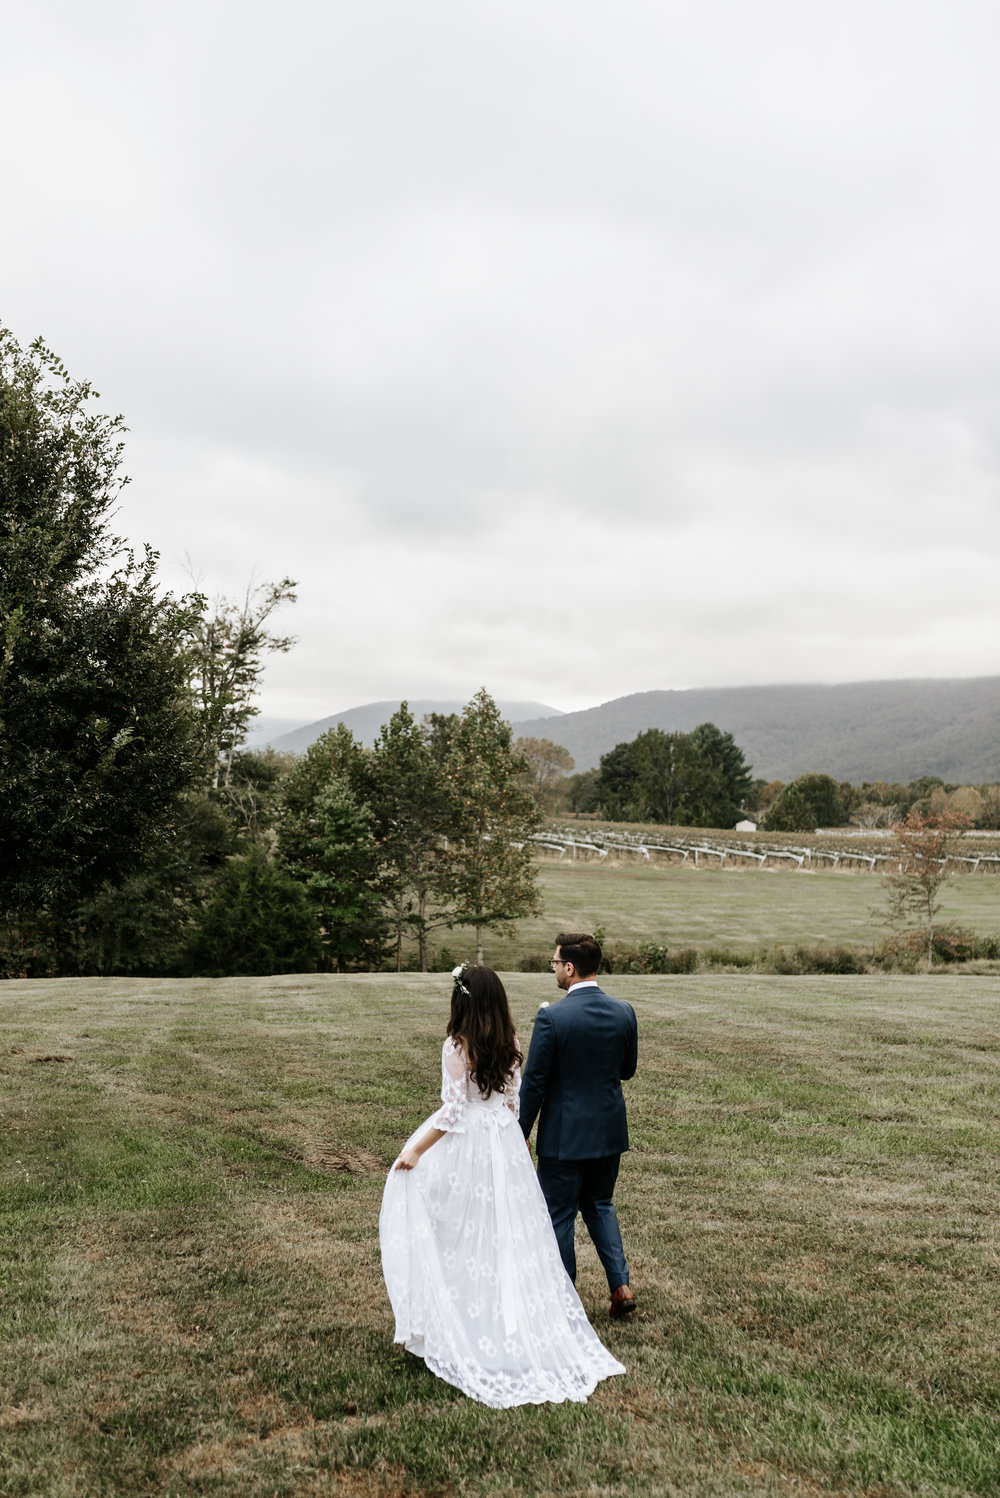 Veritas-Vineyards-and-Winery-Wedding-Photography-Afton-Virginia-Yasmin-Seth-Photography-by-V-9266.jpg